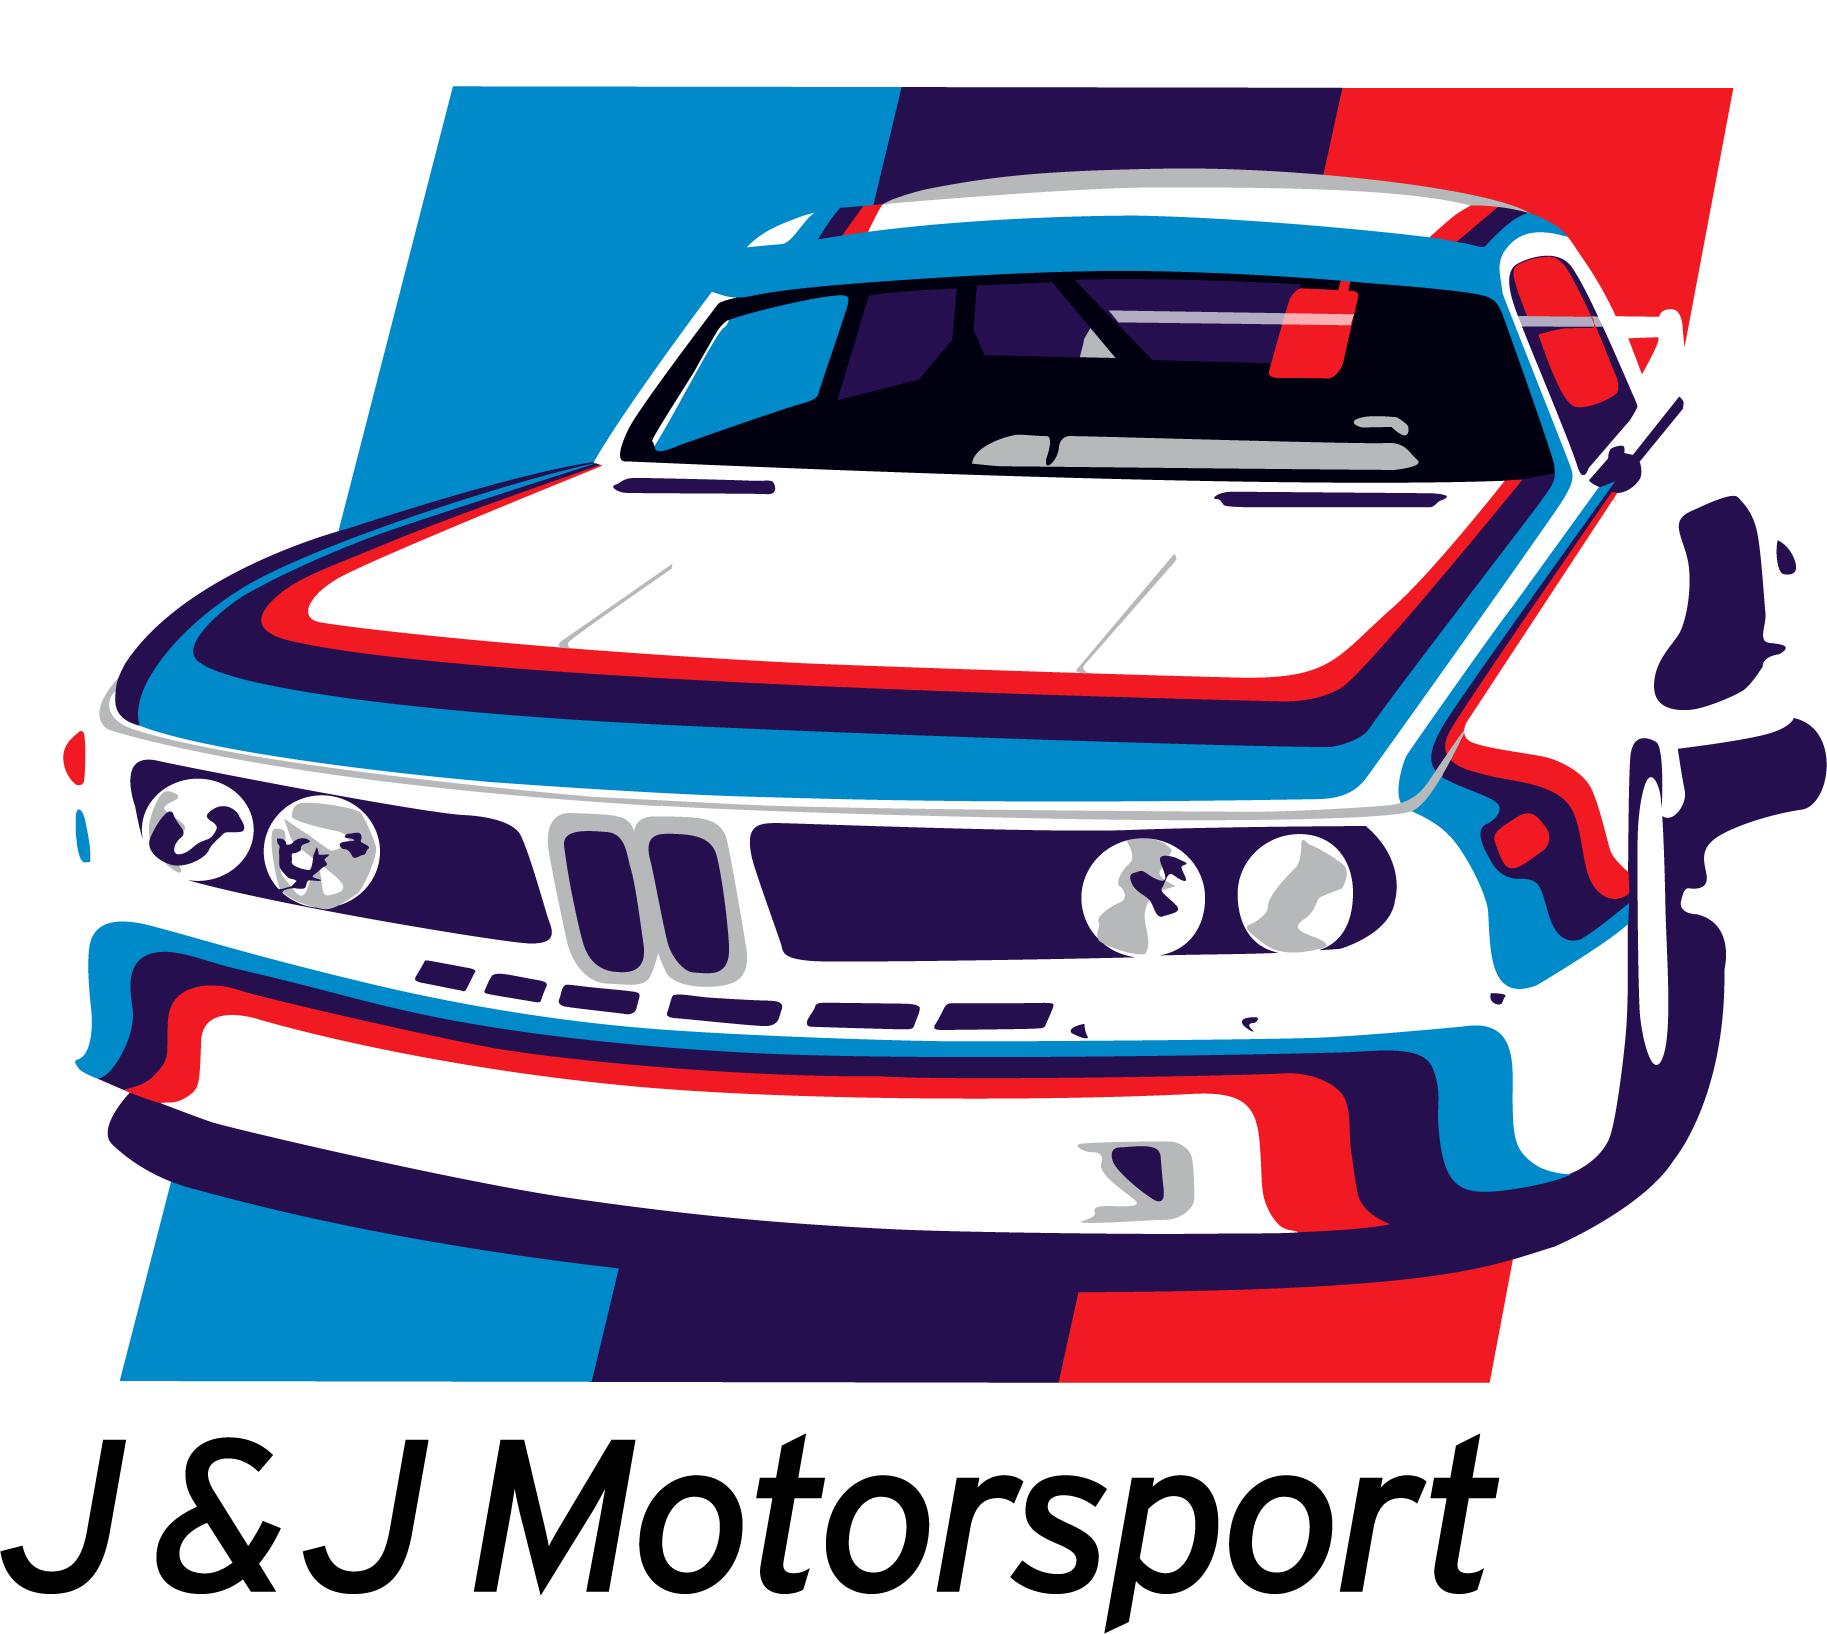 Car jack stands clipart clipart free stock BMW Repair and Service | Iowa | J&J Motorsport clipart free stock